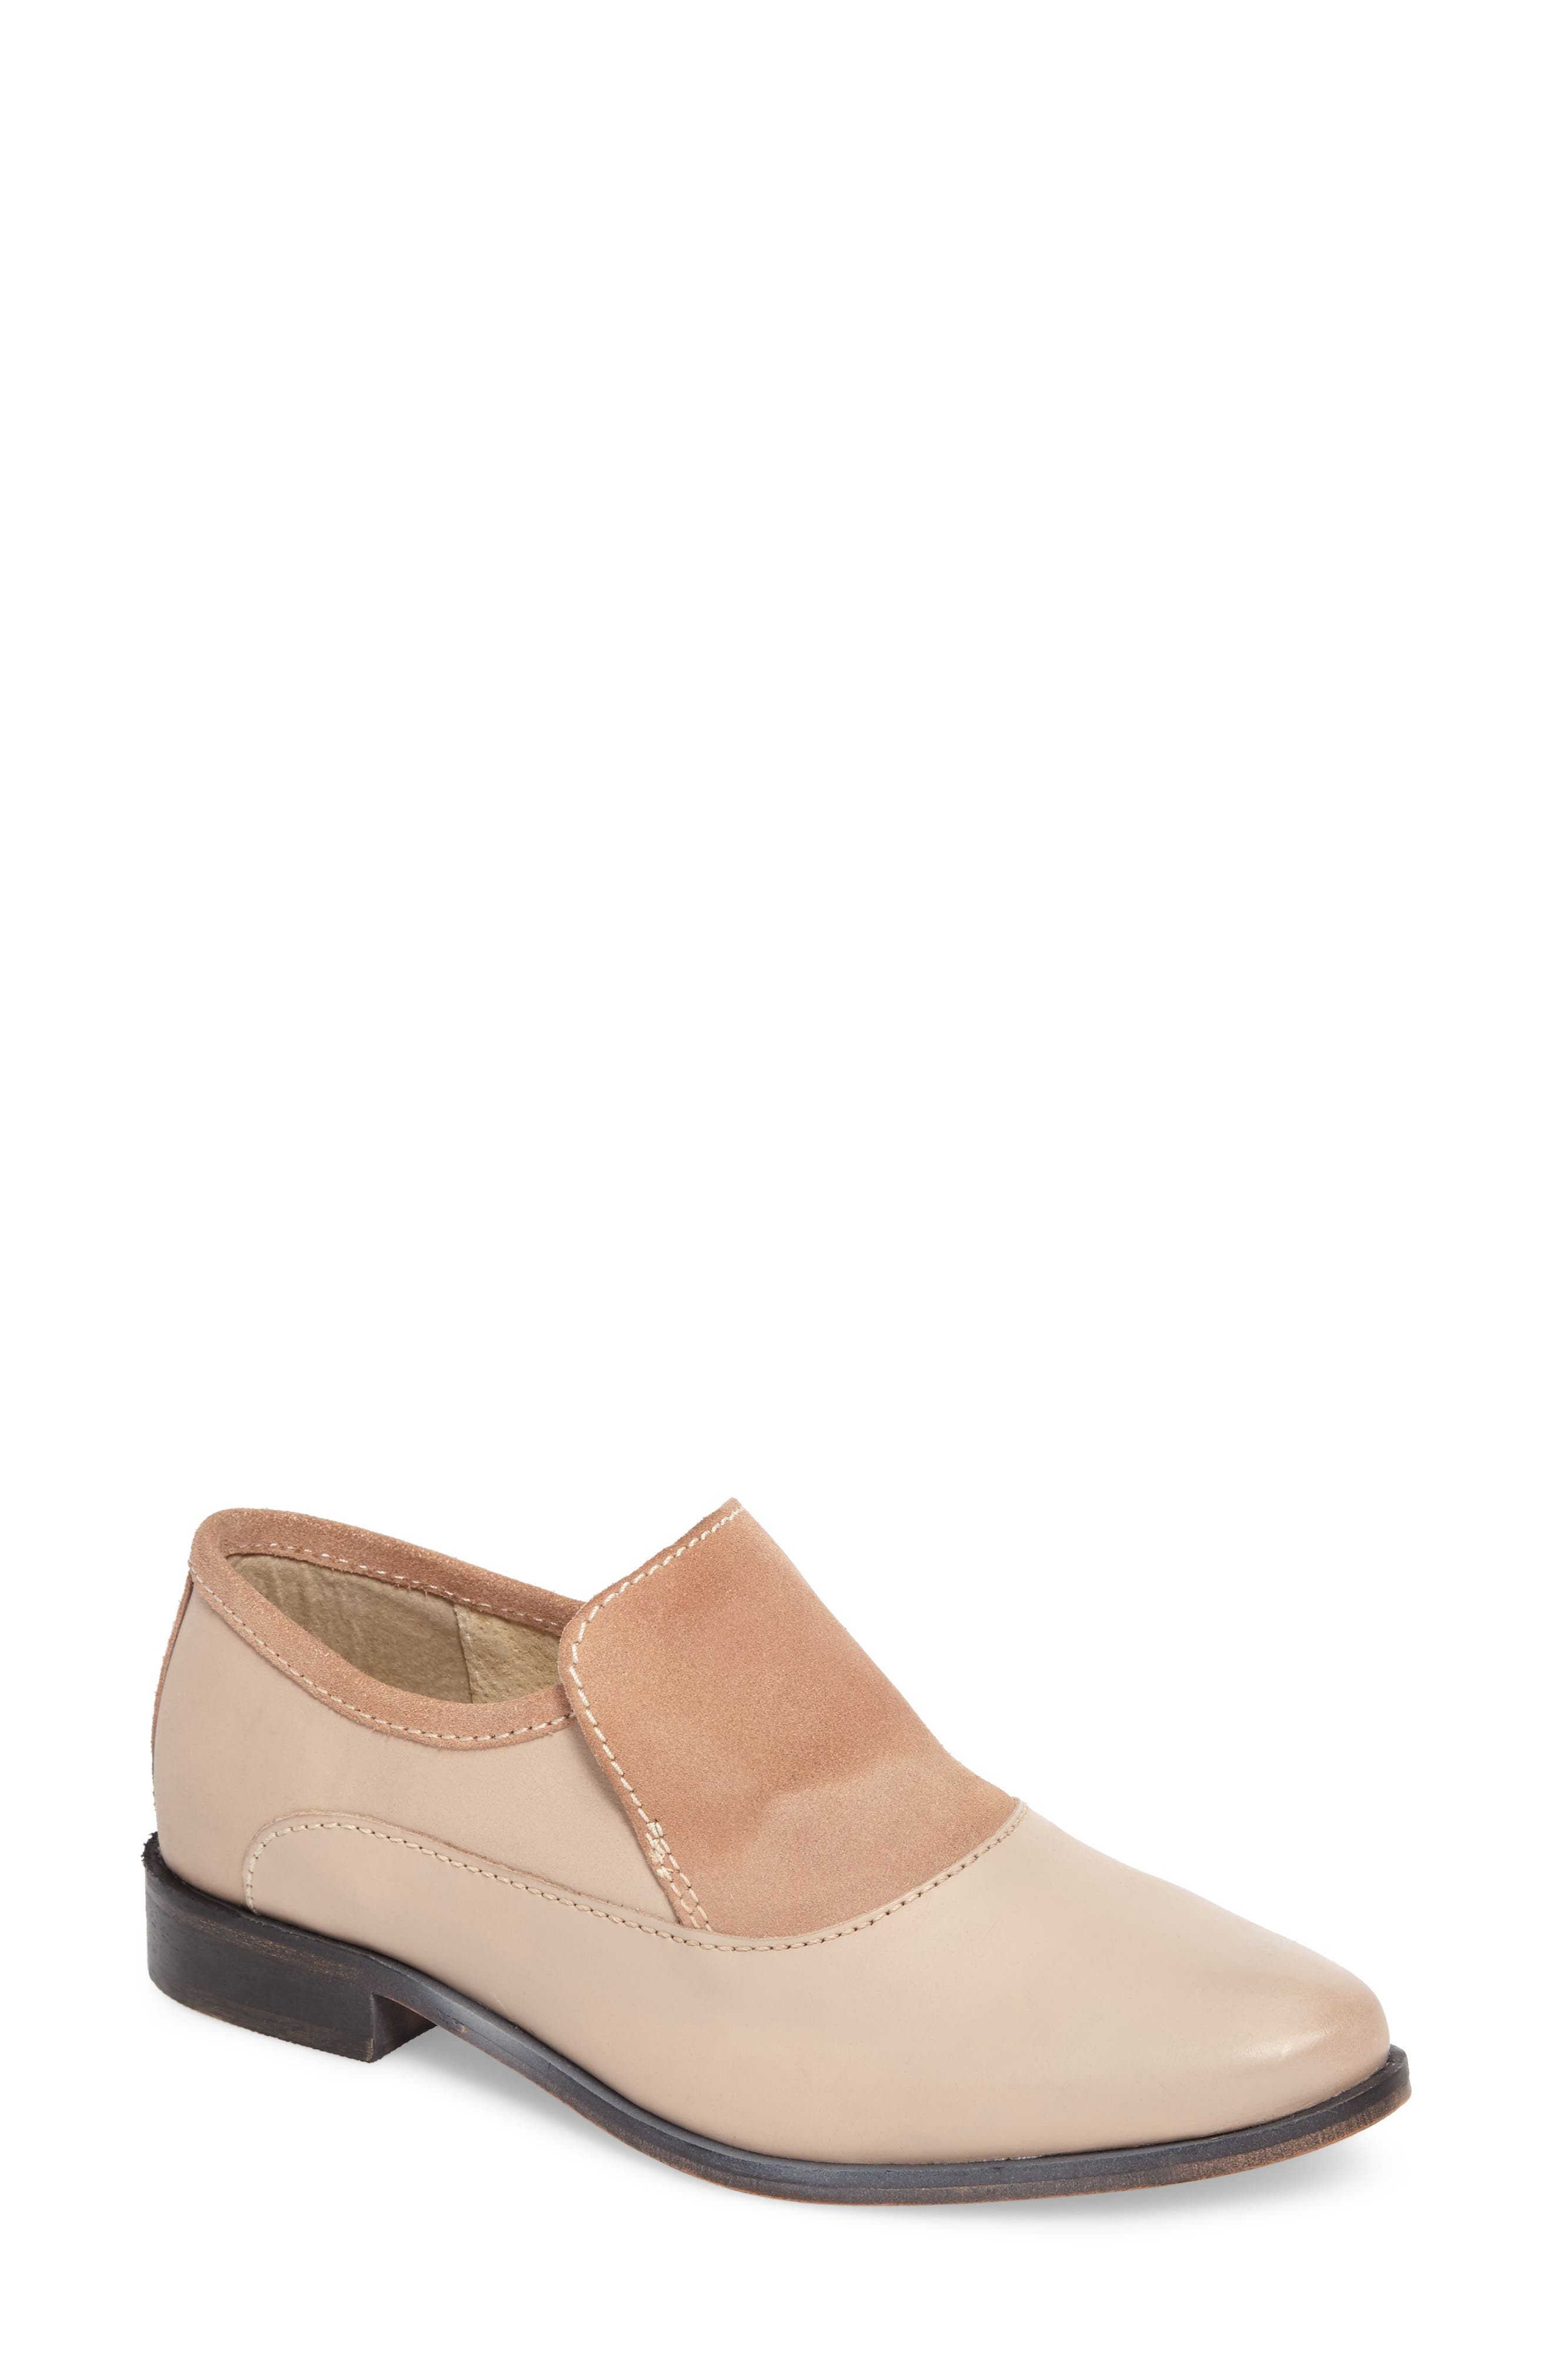 Brady Loafer,                             Main thumbnail 3, color,